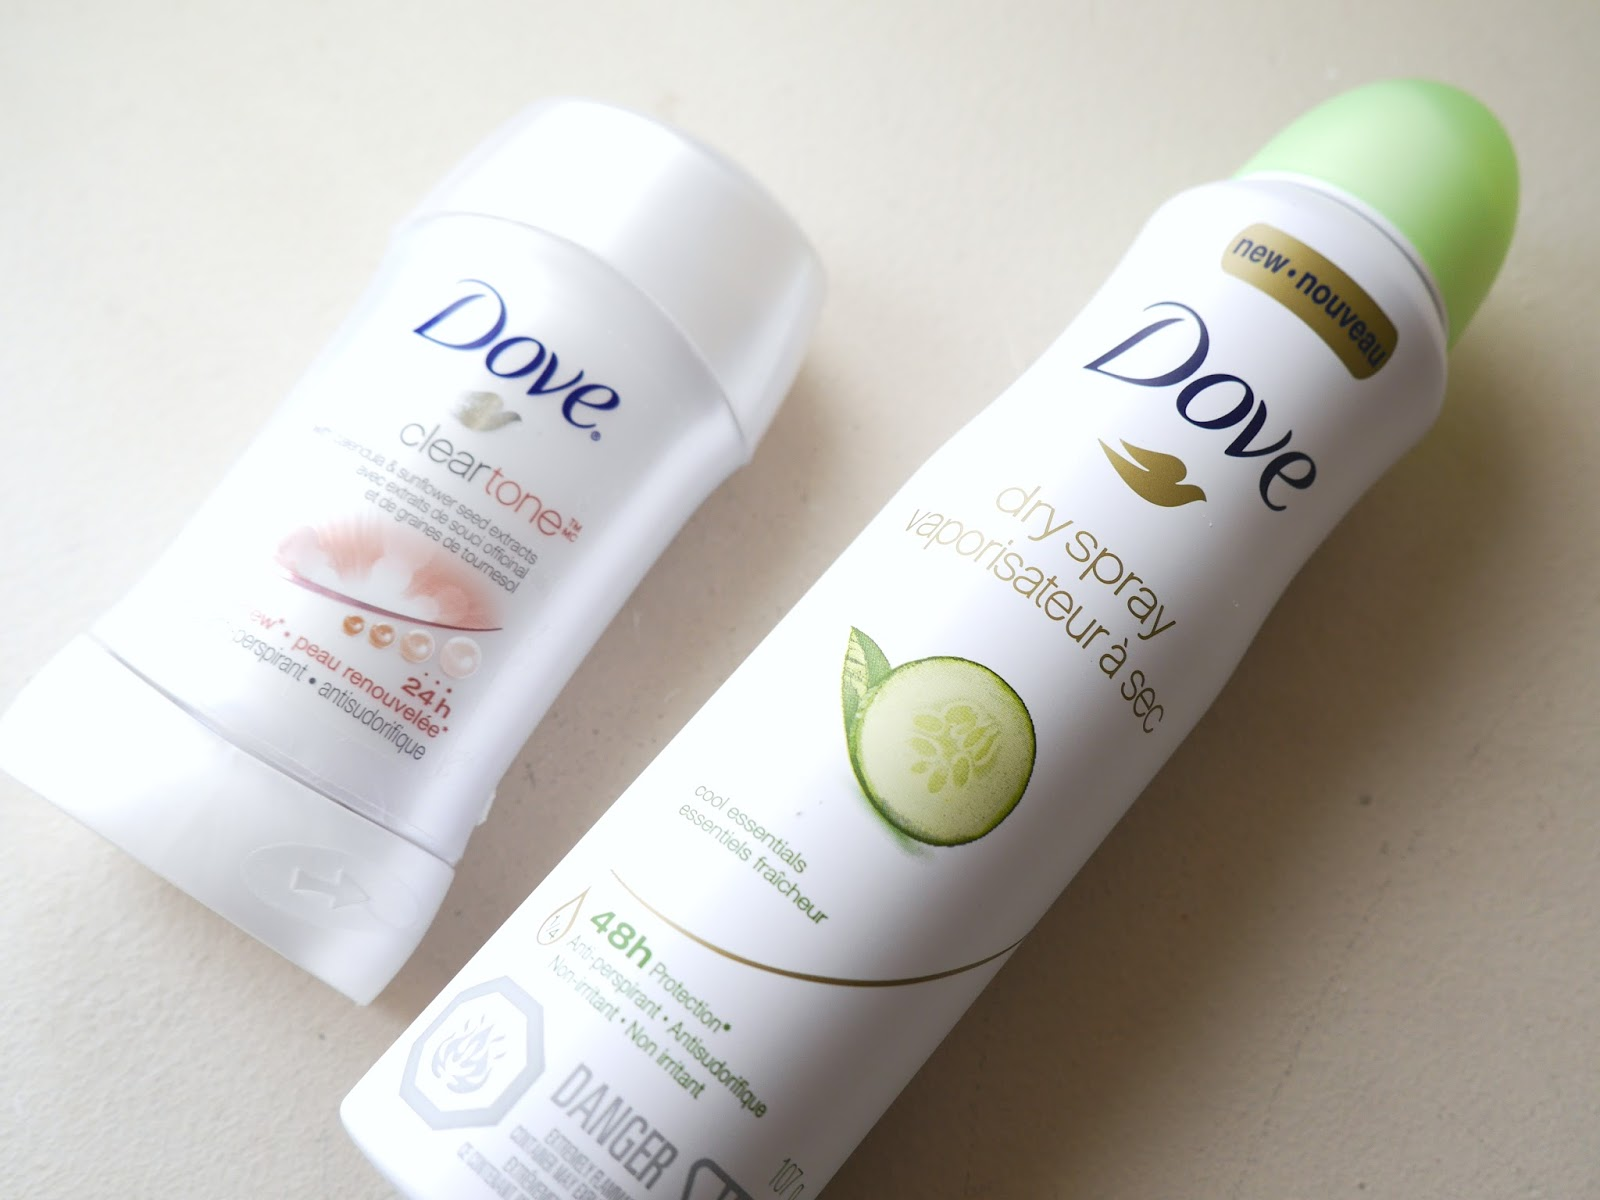 Dove dry spray deodorant review